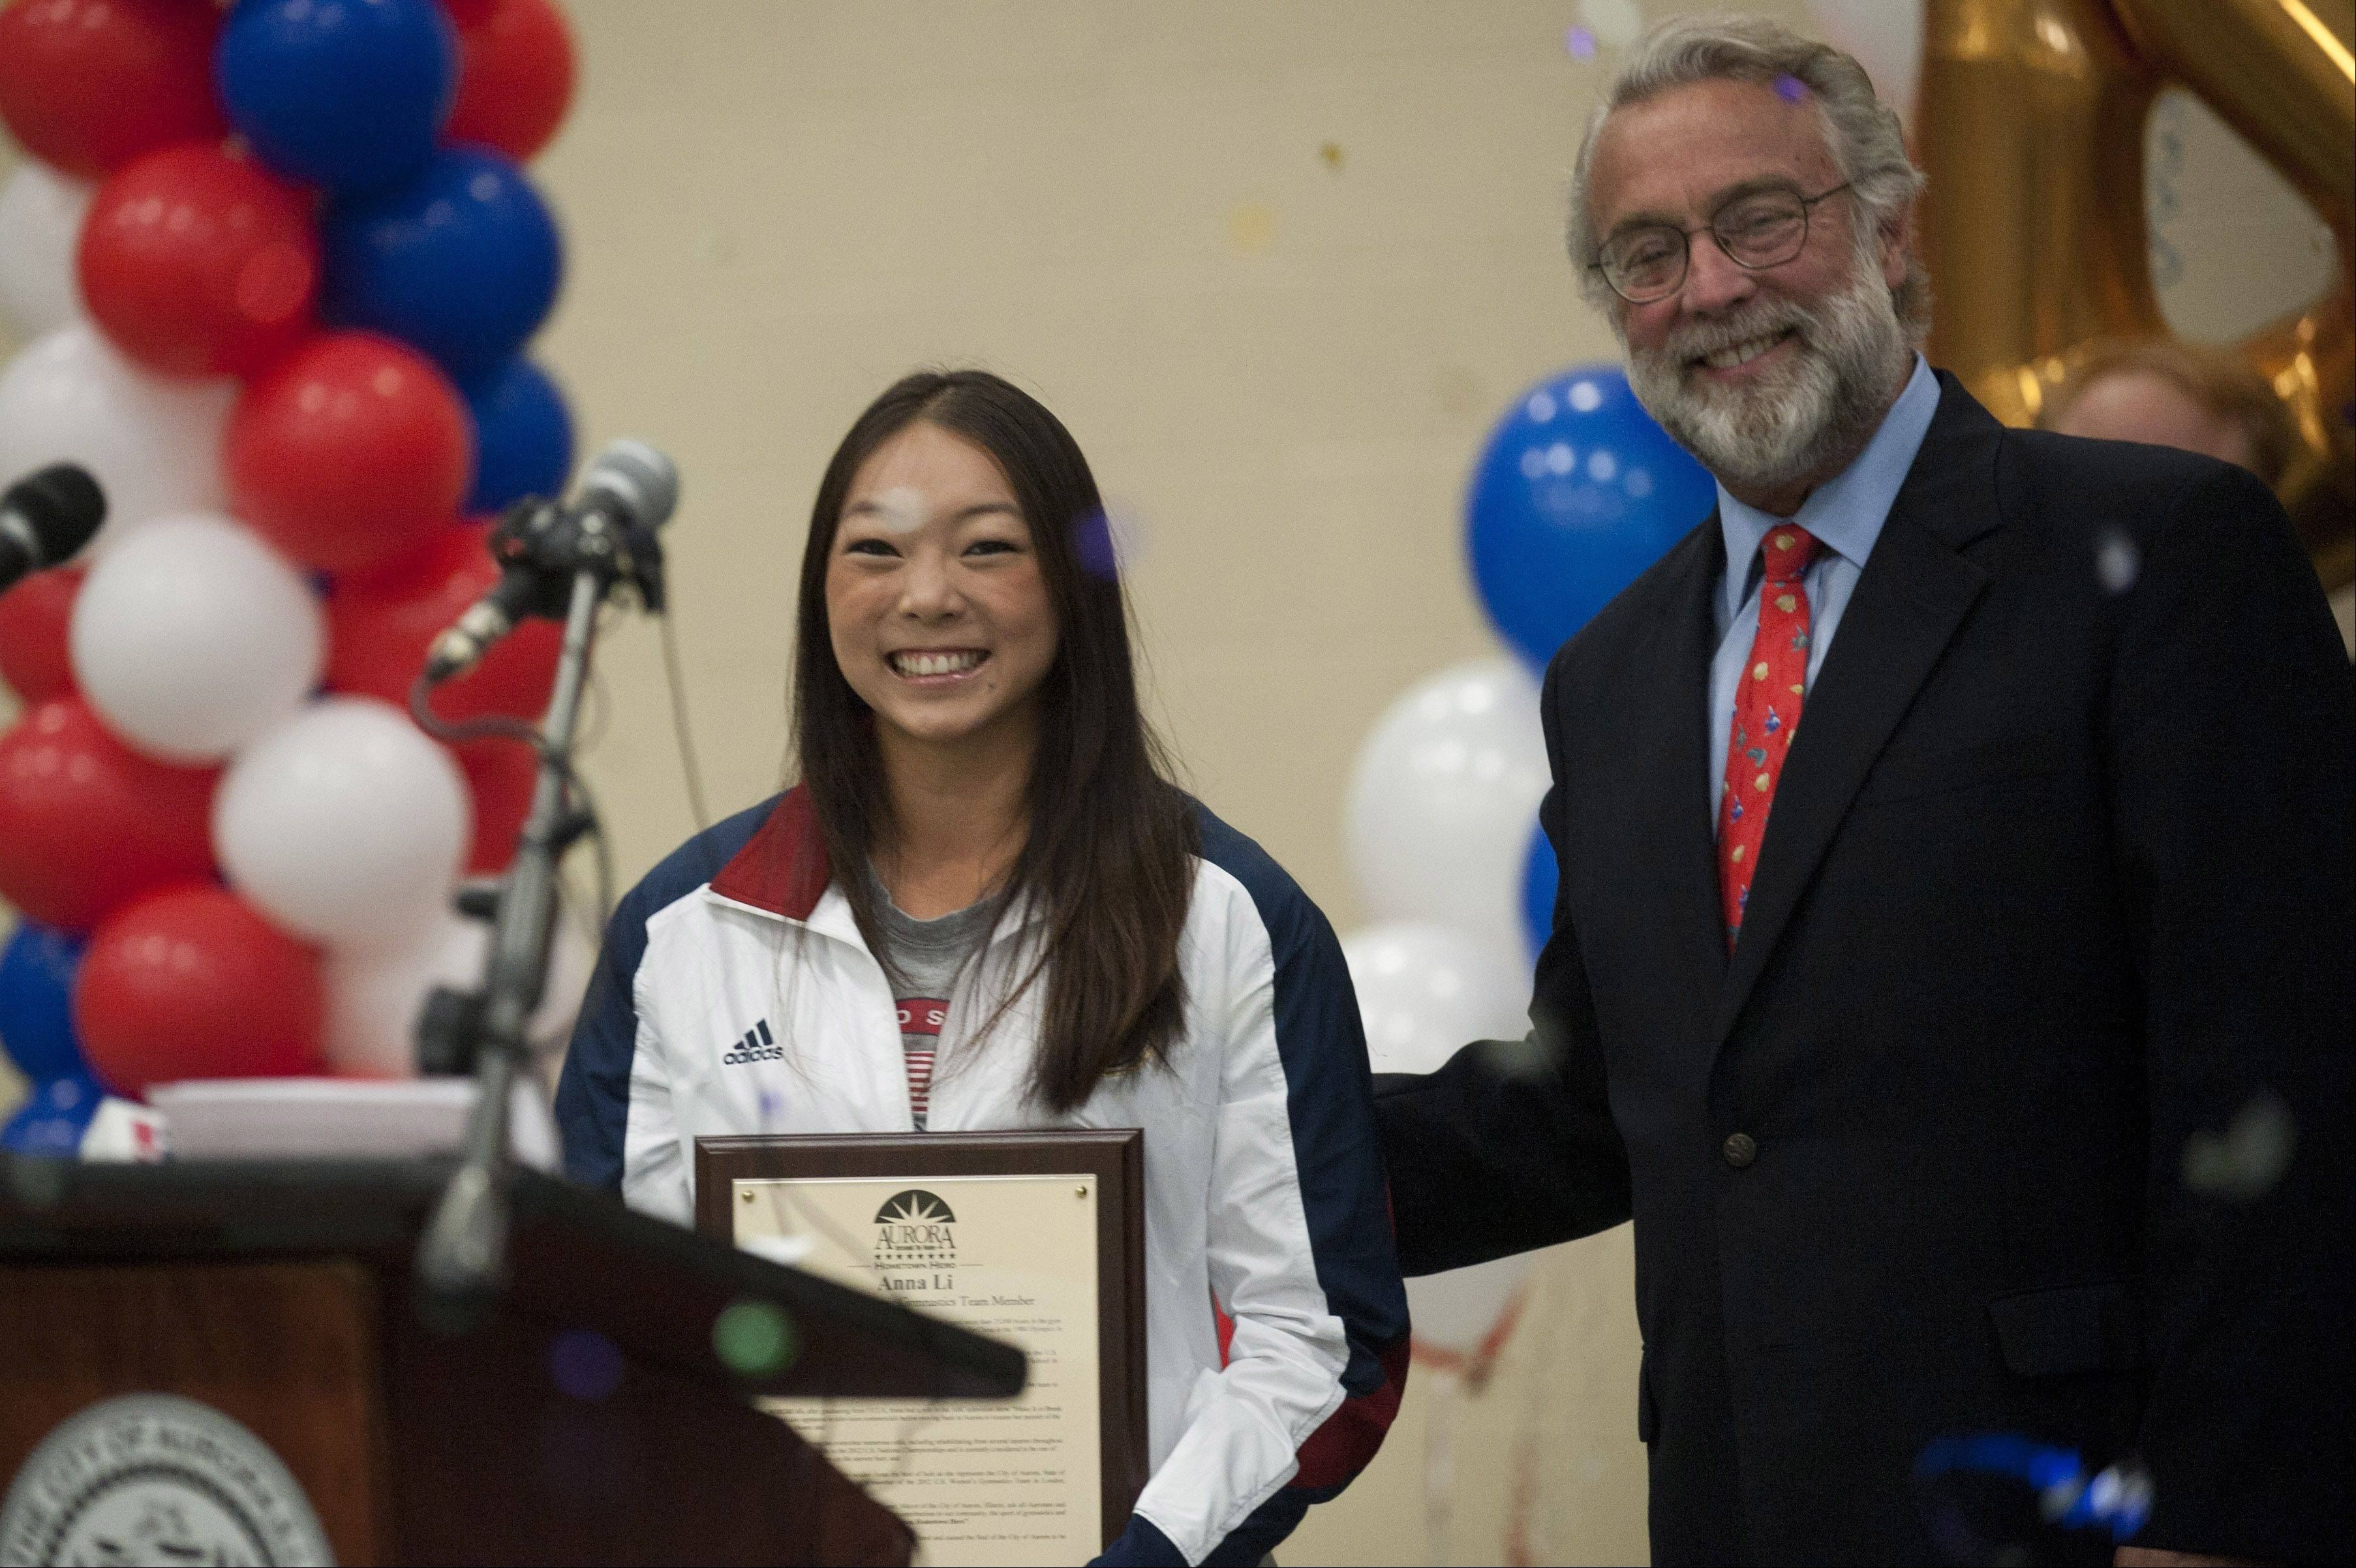 Anna Li, who was chosen last Sunday as an alternate member of the U.S. Women's Gymnastics Team for the upcoming London Olympic Games, was presented an award by Mayor Weisner during a sendoff celebration in Aurora on Monday.